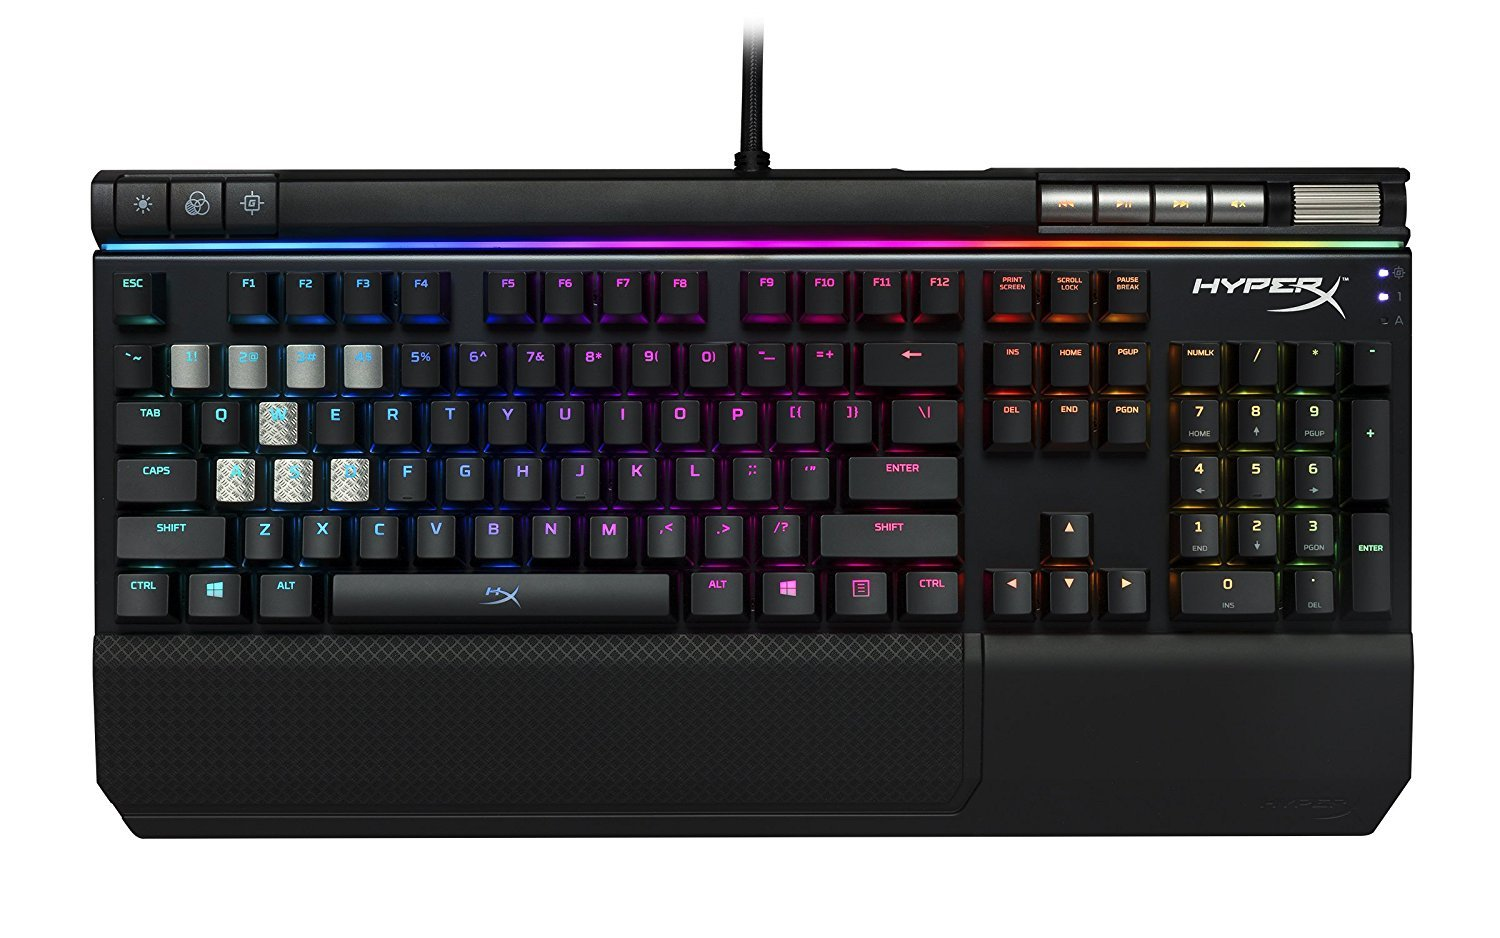 HyperX Alloy Elite RGB Mechanical Gaming Keyboard (Cherry MX Blue) for PC image